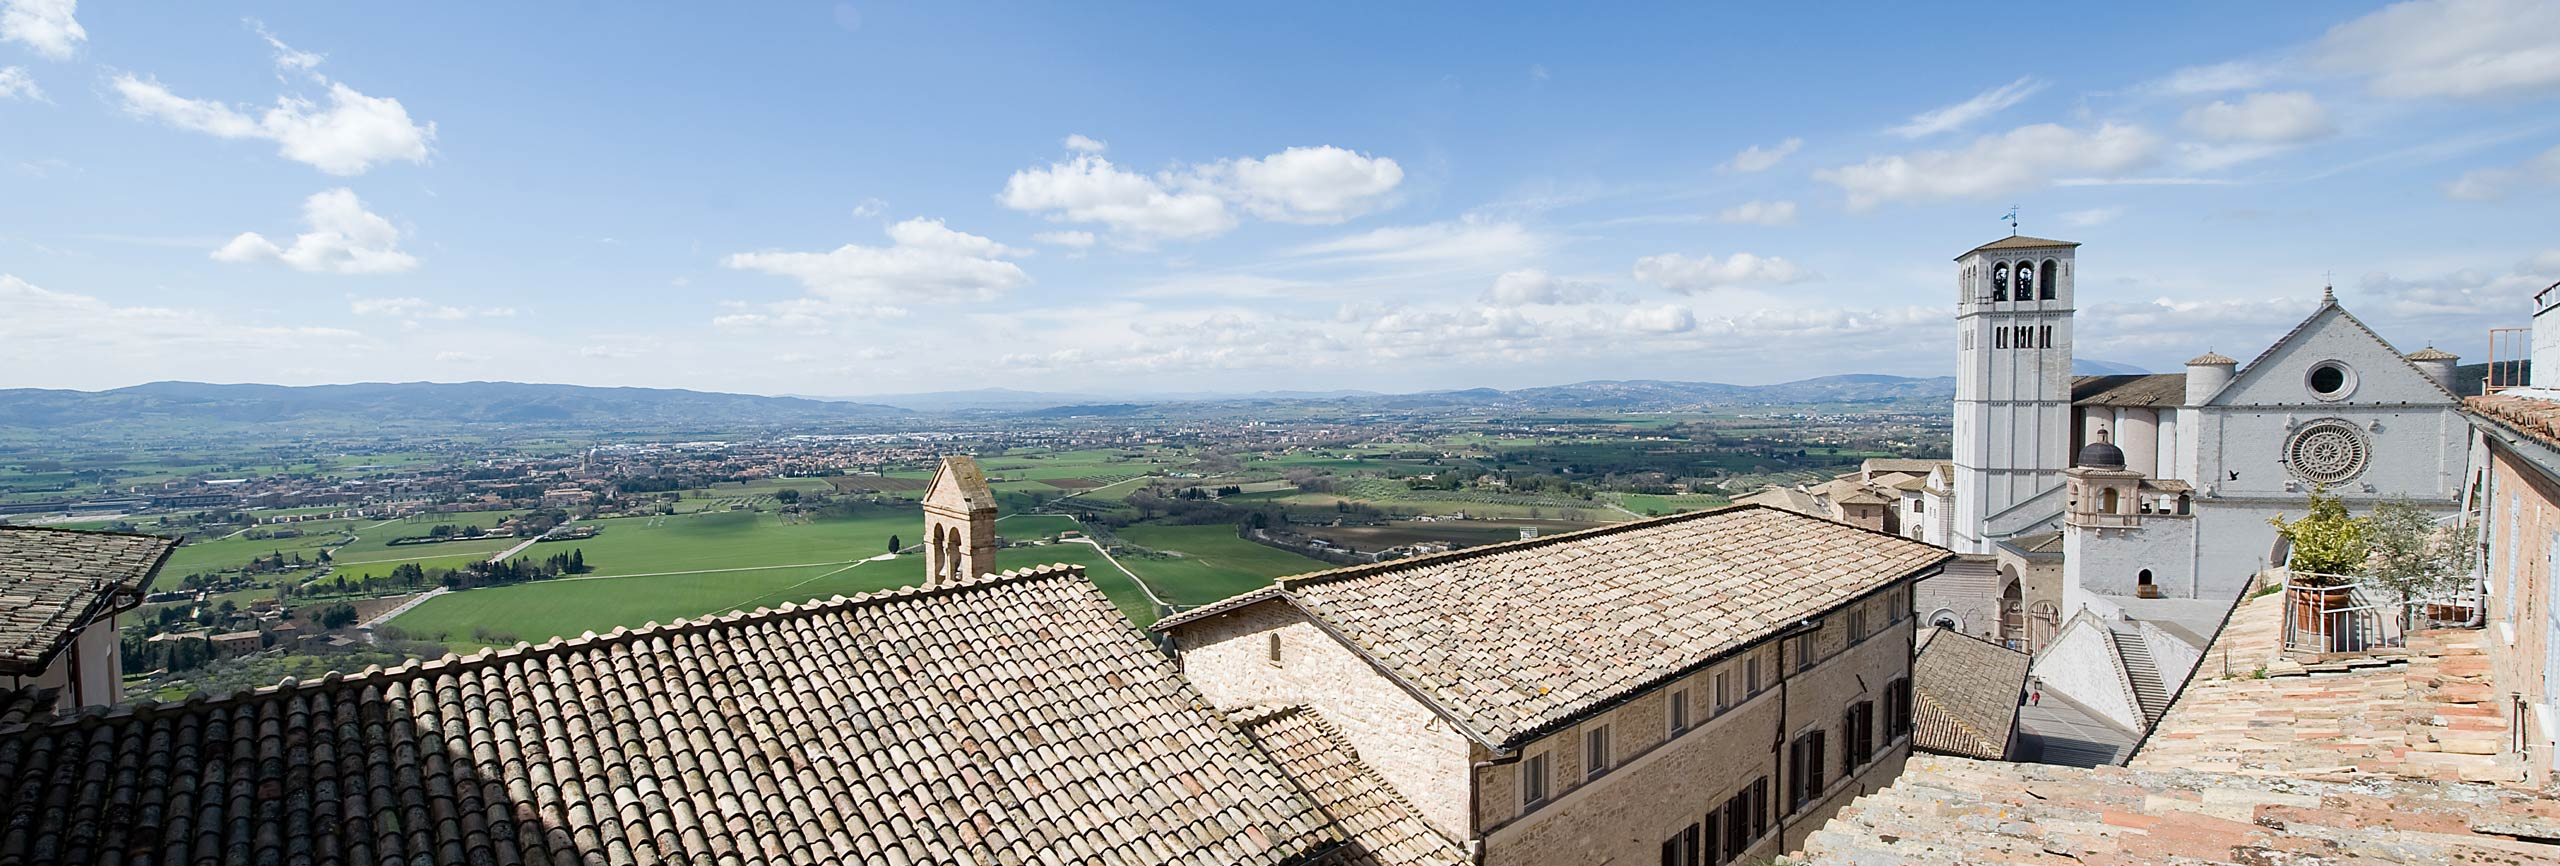 Slide7-Panorama-Assisi-terrazza